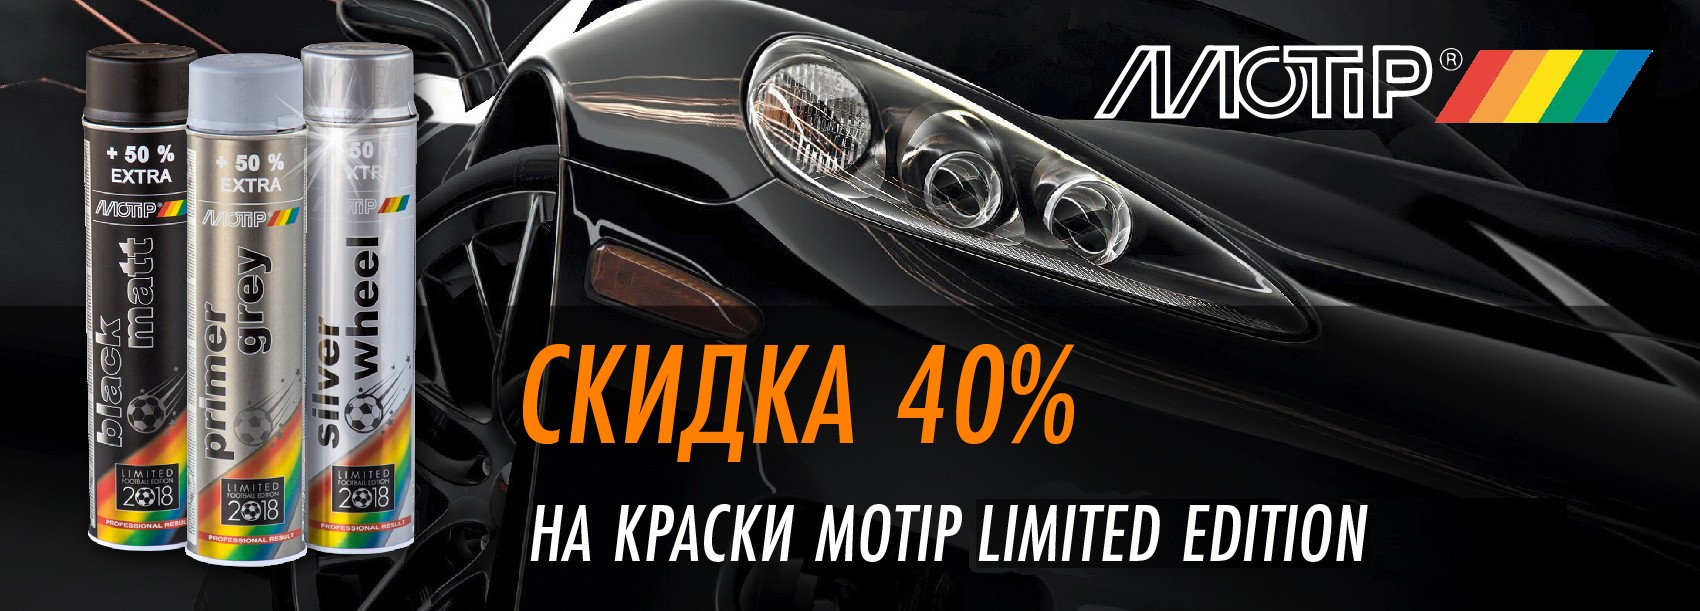 Акция Motip Limited Edition